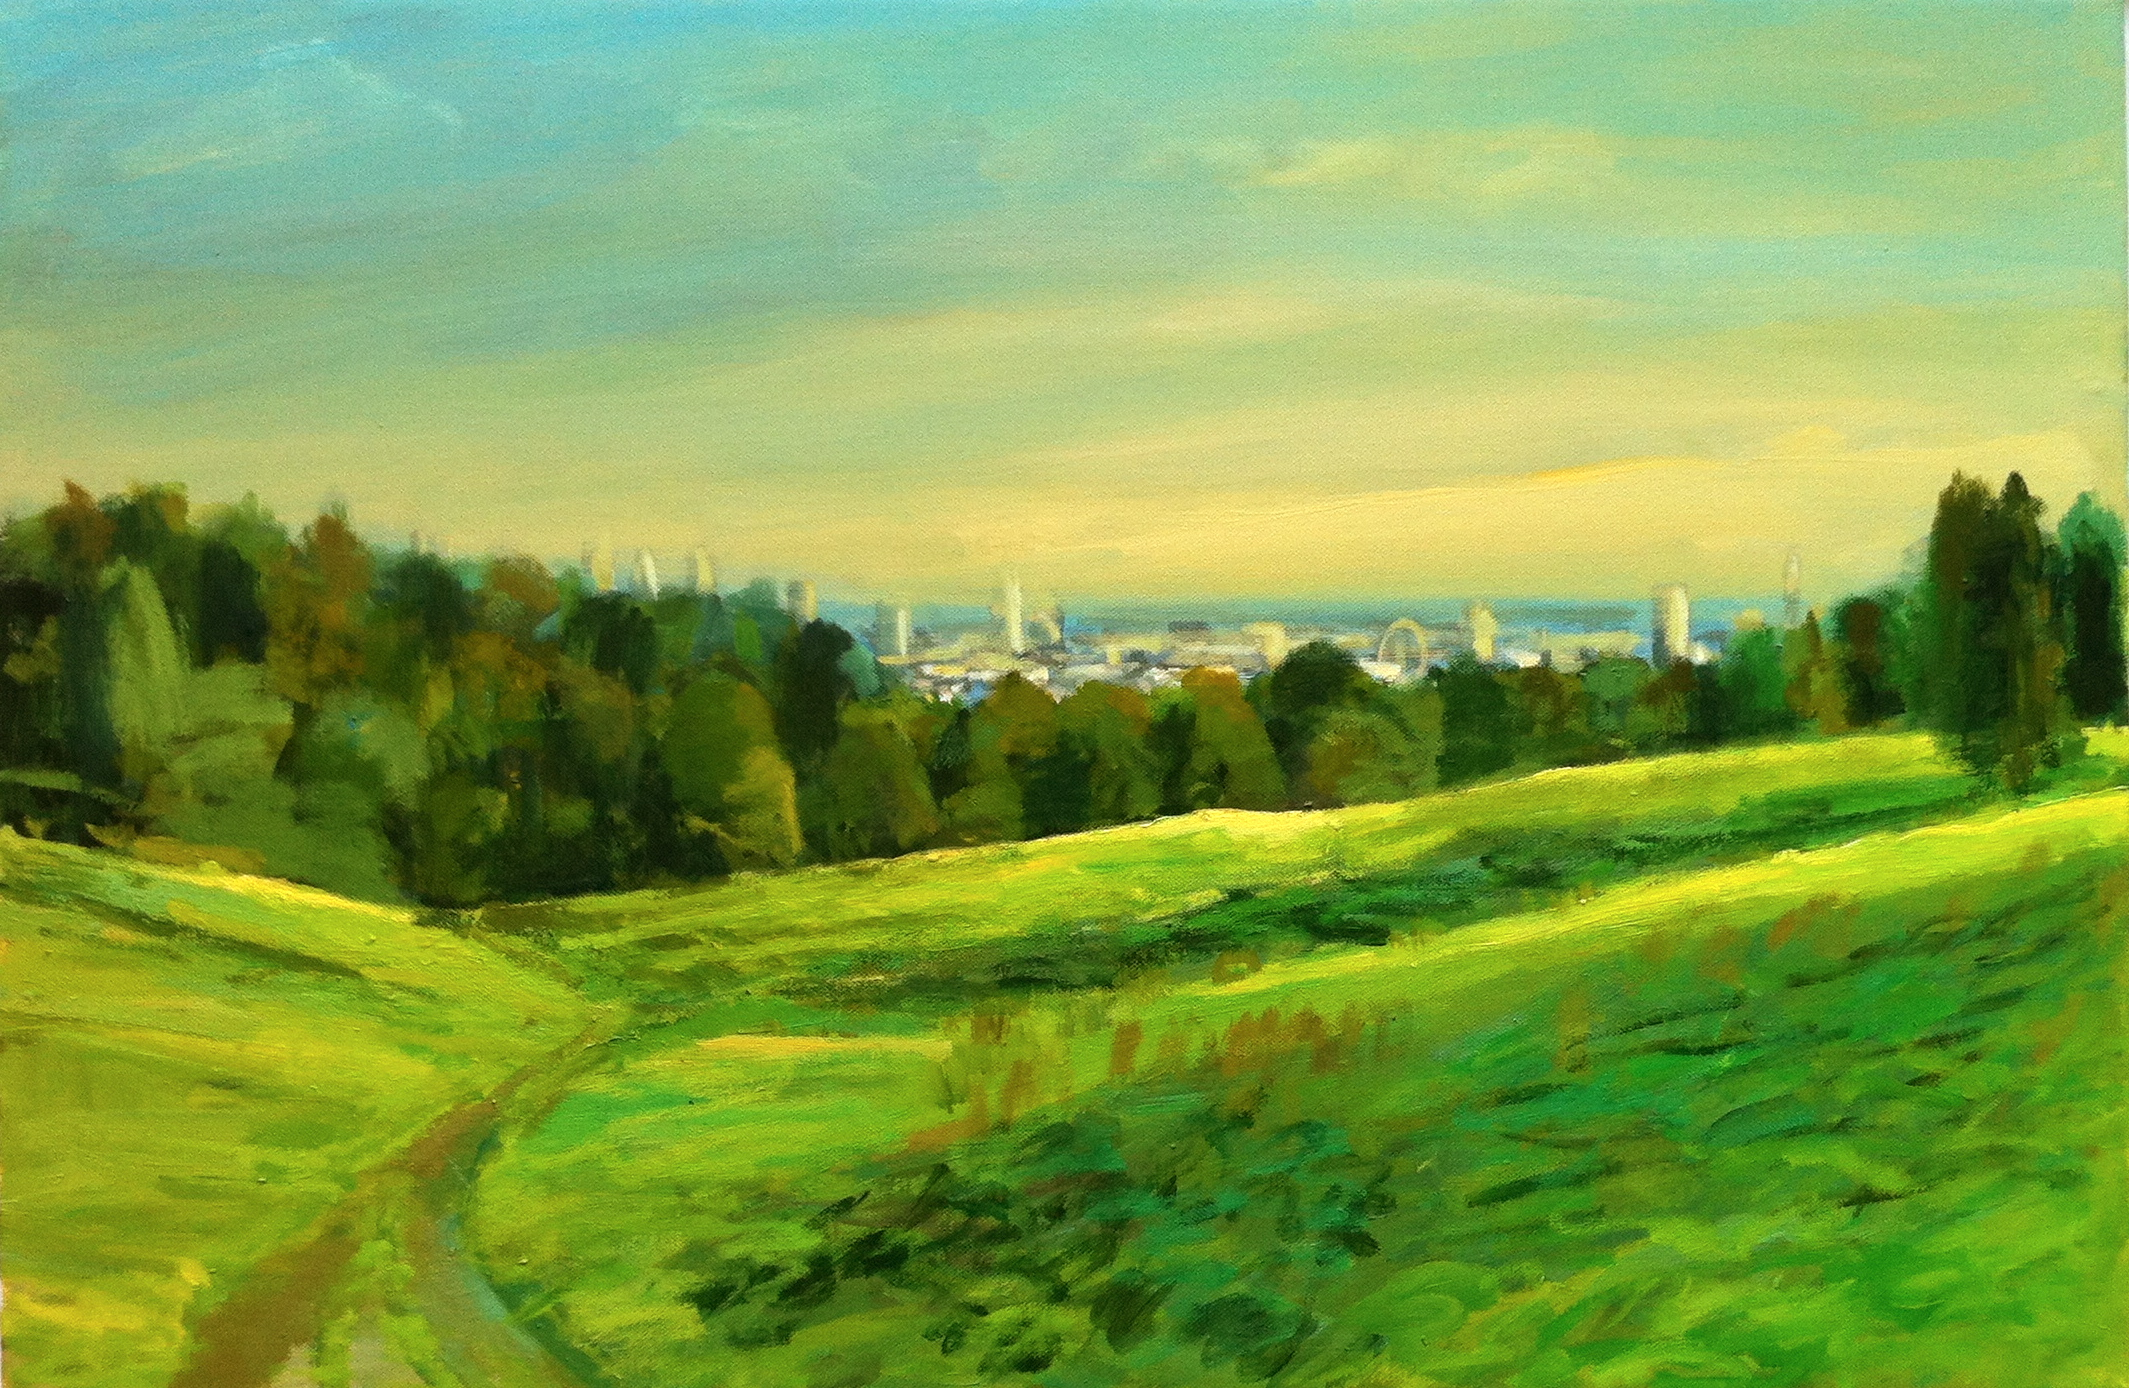 The City from kenwood #2 - 2011